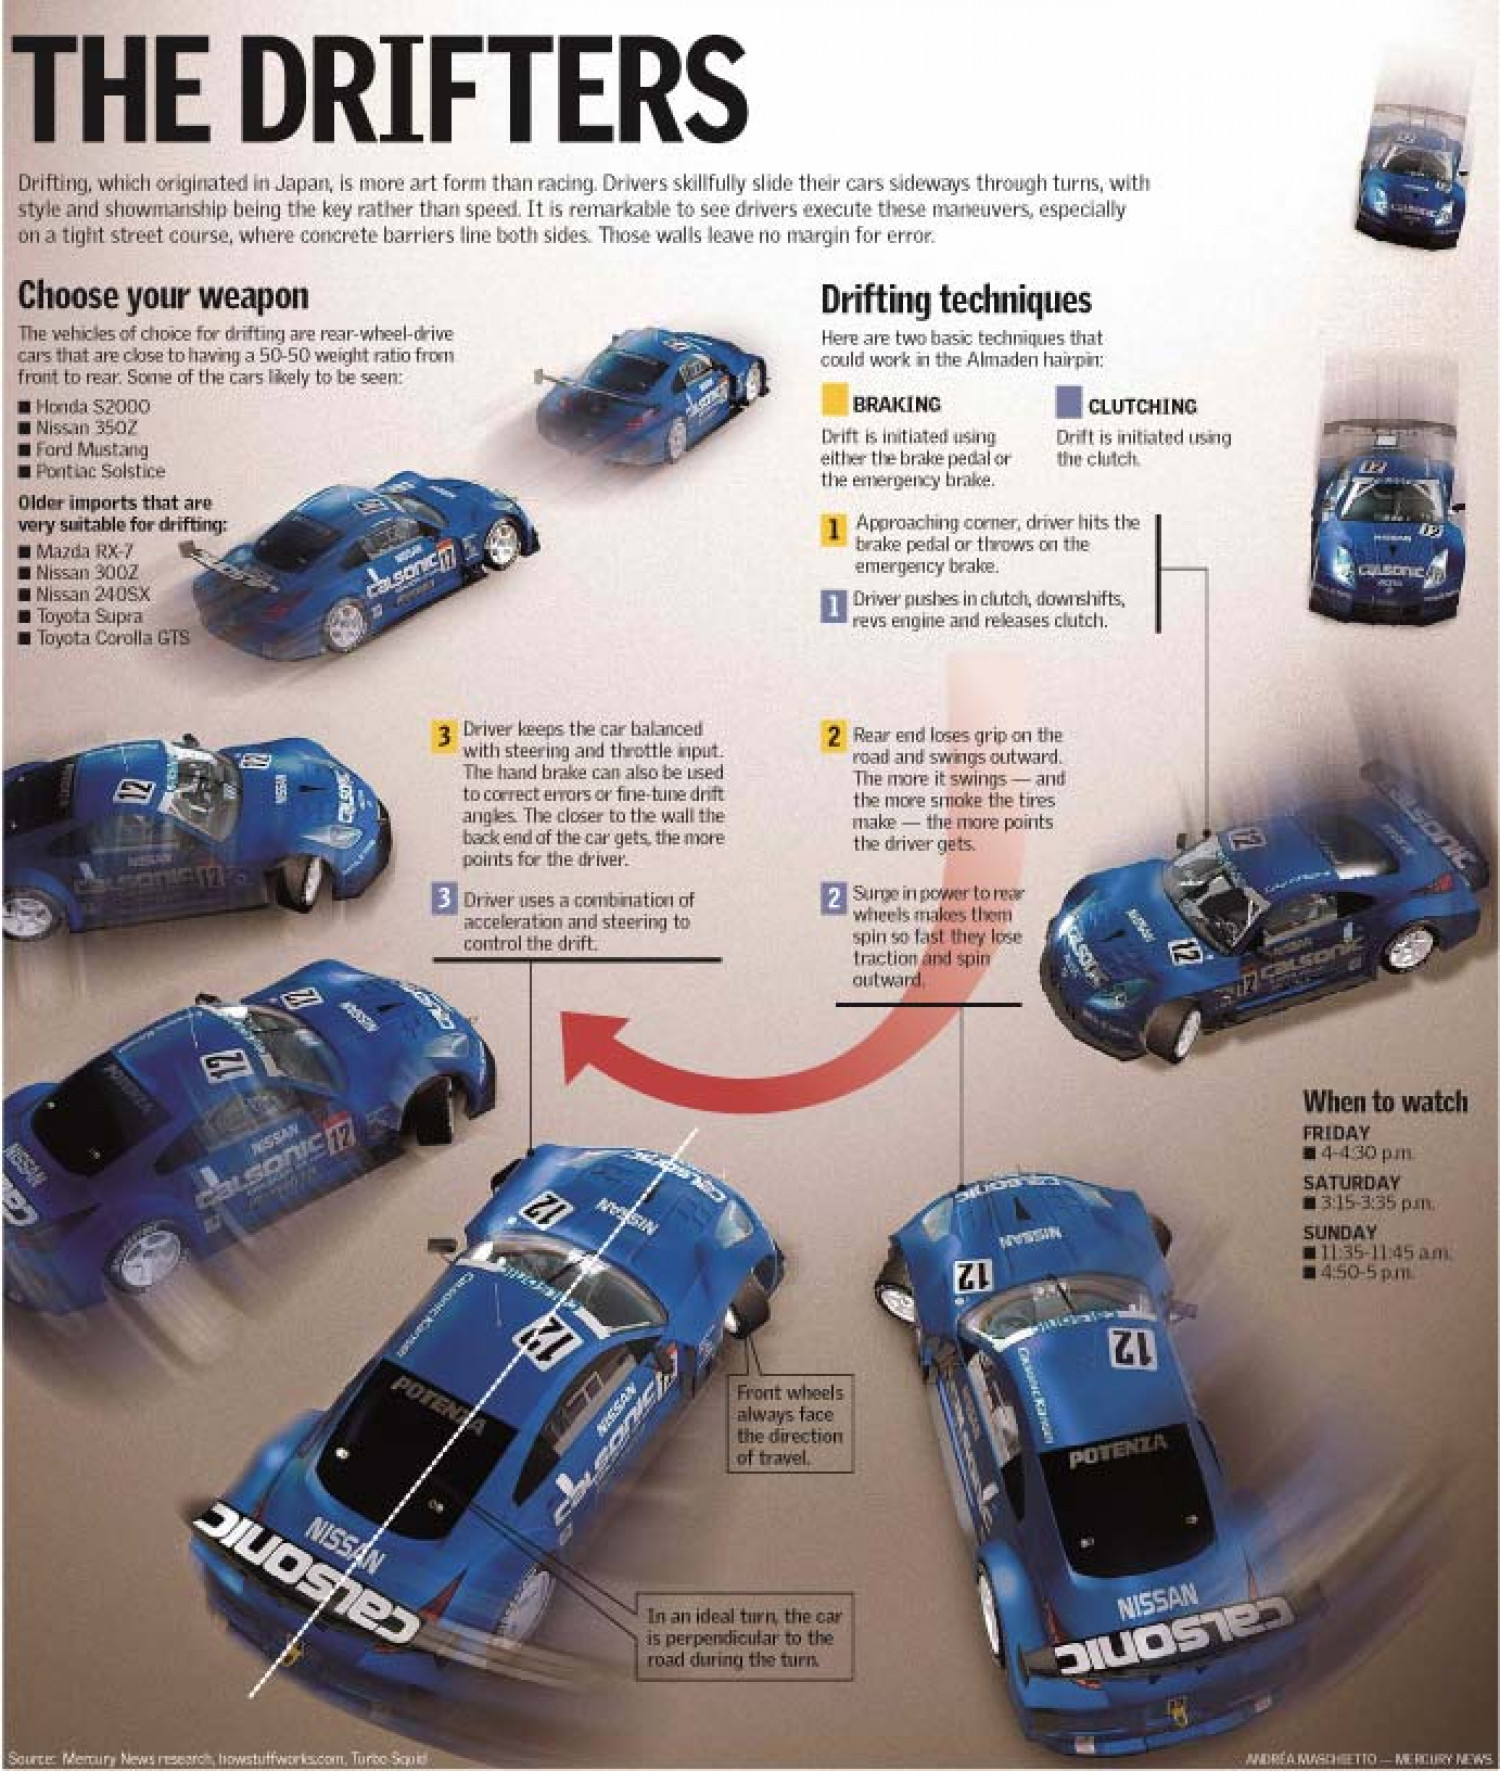 The Drifters: A Guide to the Art of Drifting in a Car Infographic